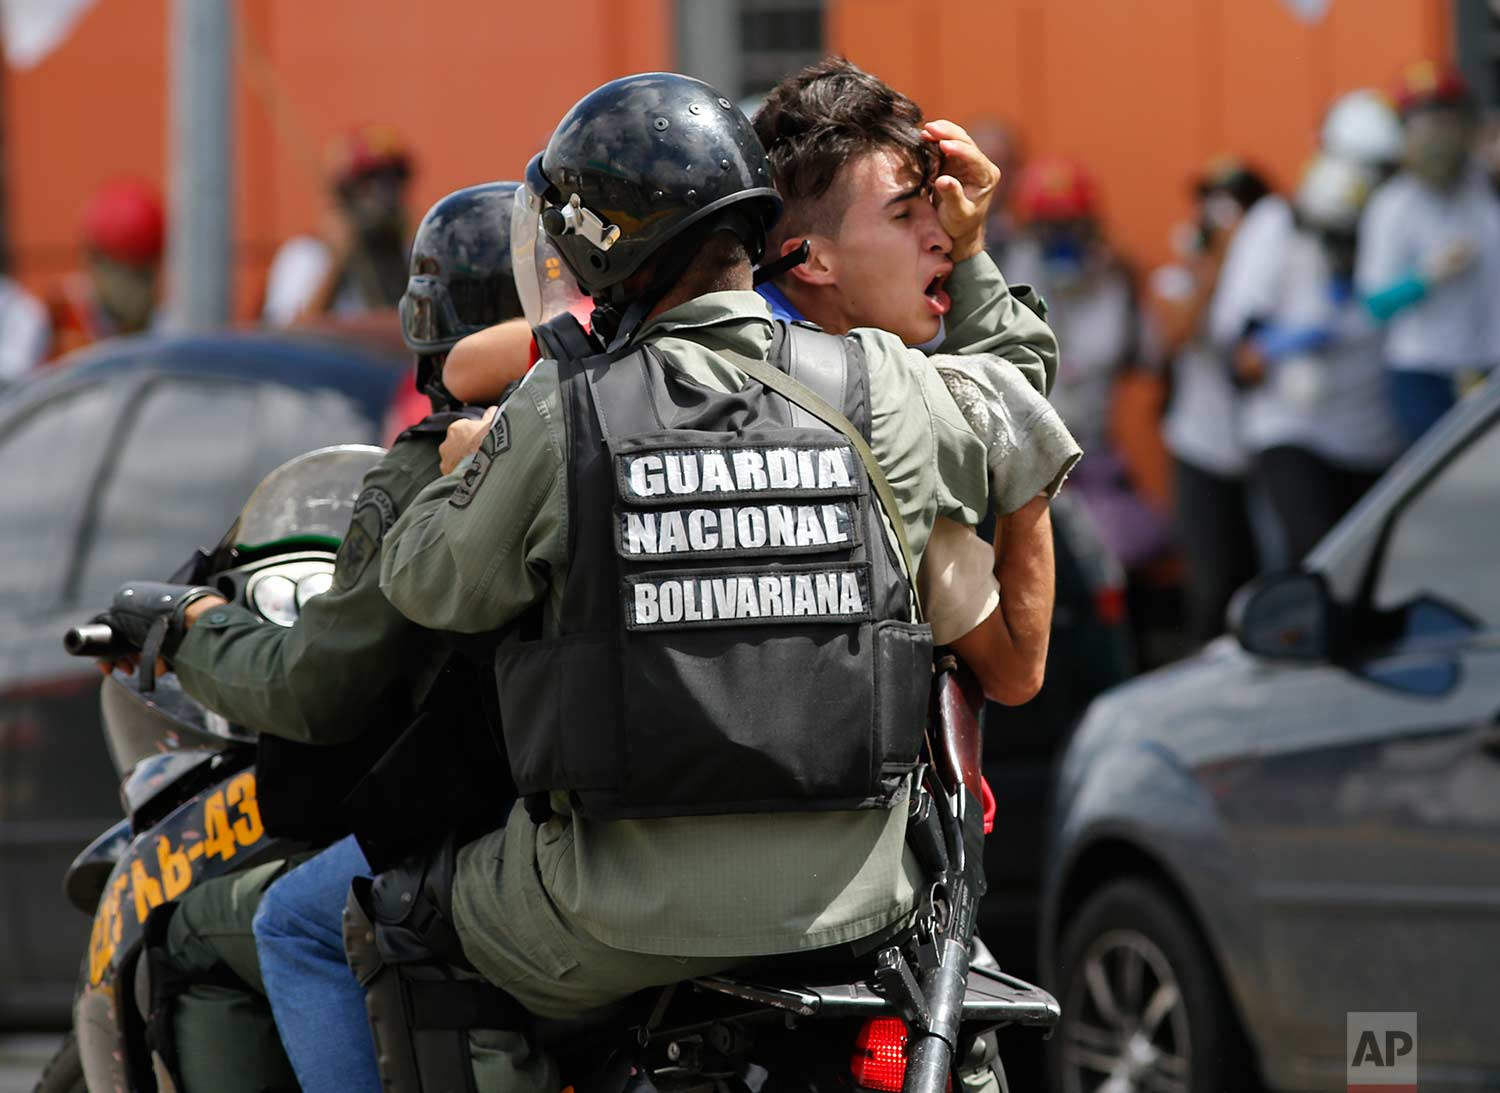 A protester taking part in an anti-government march to the Supreme Court is detained and driven away by Bolivarian National Guard soldiers in Caracas, Venezuela, Thursday, July 6, 2017. (AP Photo/Ariana Cubillos)